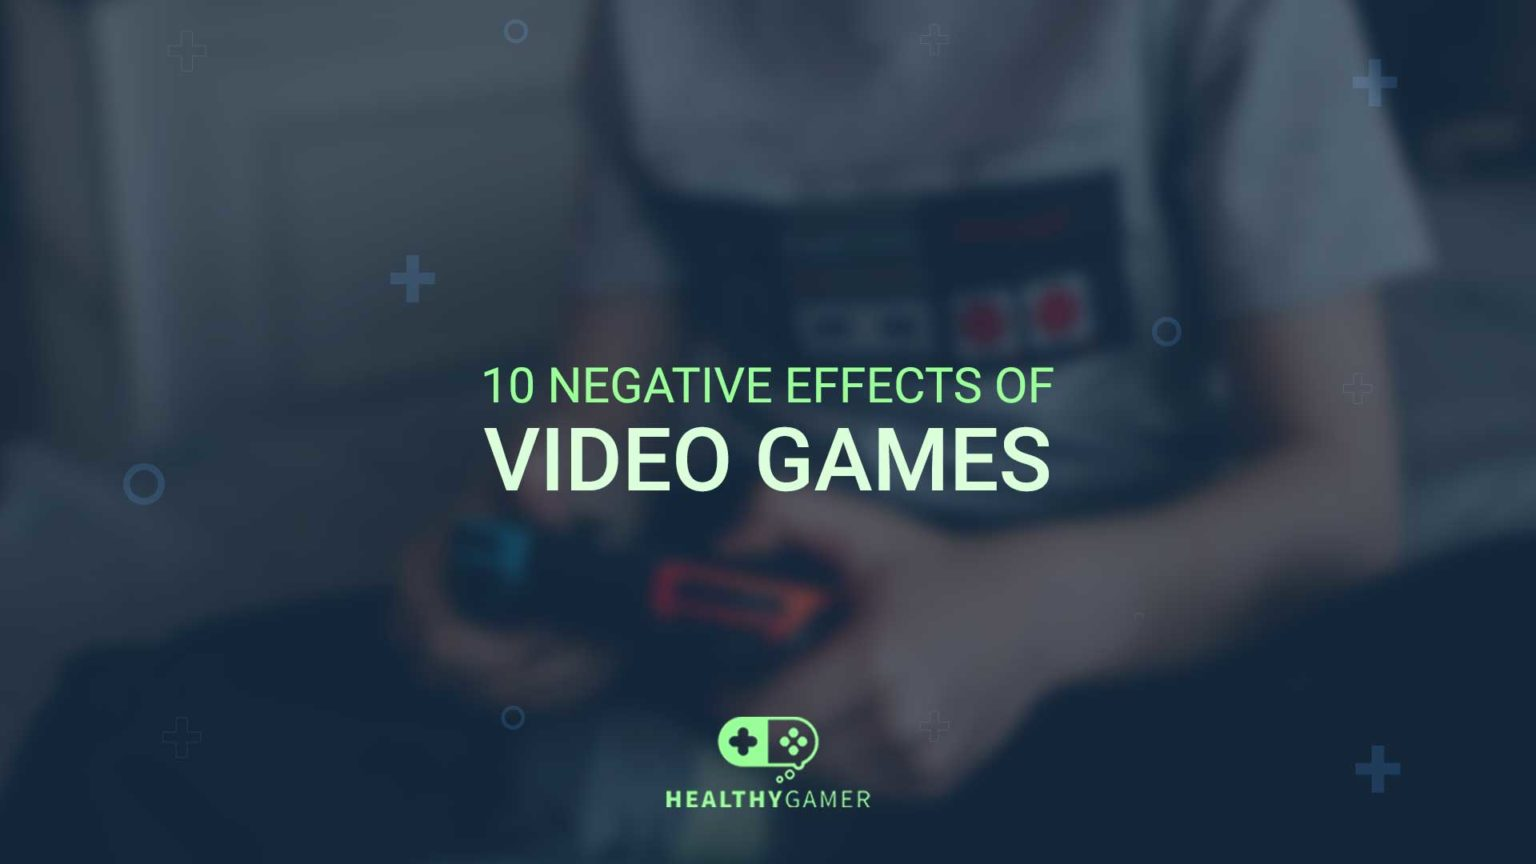 10 Negative Effects of Video Games